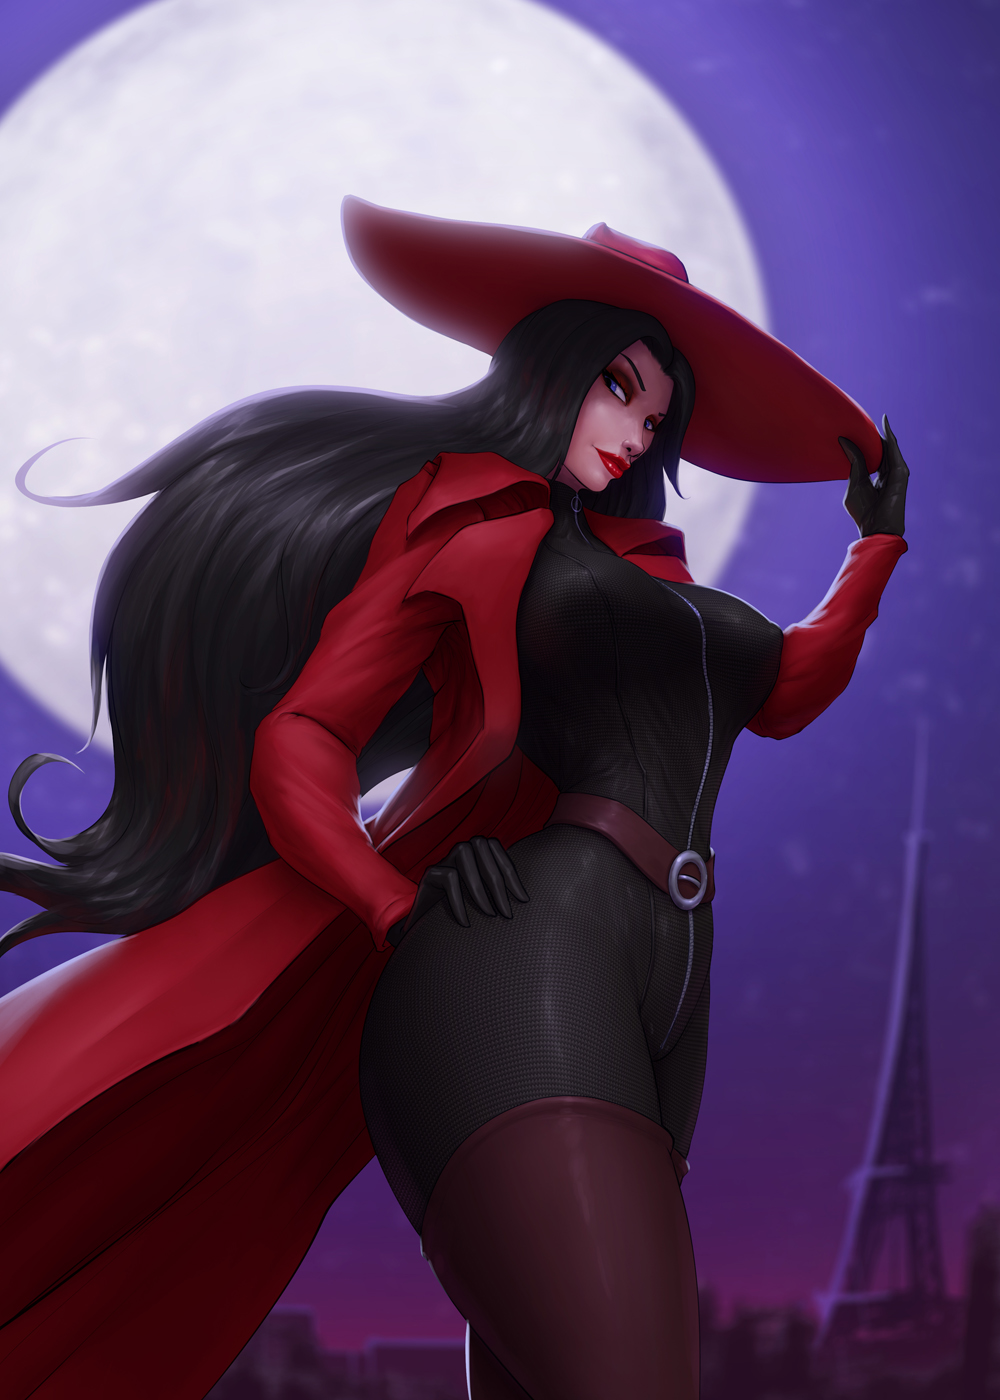 1girl barretxiii belt black_bodysuit black_gloves black_hair blue_eyes bodysuit boots breasts brown_footwear carmen_sandiego carmen_sandiego_(series) coat covered_nipples eyeshadow fedora full-length_zipper full_moon gloves hand_on_hip hat hat_tug highres large_breasts leather leather_boots lips lipstick long_coat long_hair makeup moon night open_clothes open_coat red_coat skin_tight sleeveless solo thick_thighs thigh-highs thigh_boots thighs turtleneck very_long_hair zipper zipper_pull_tab